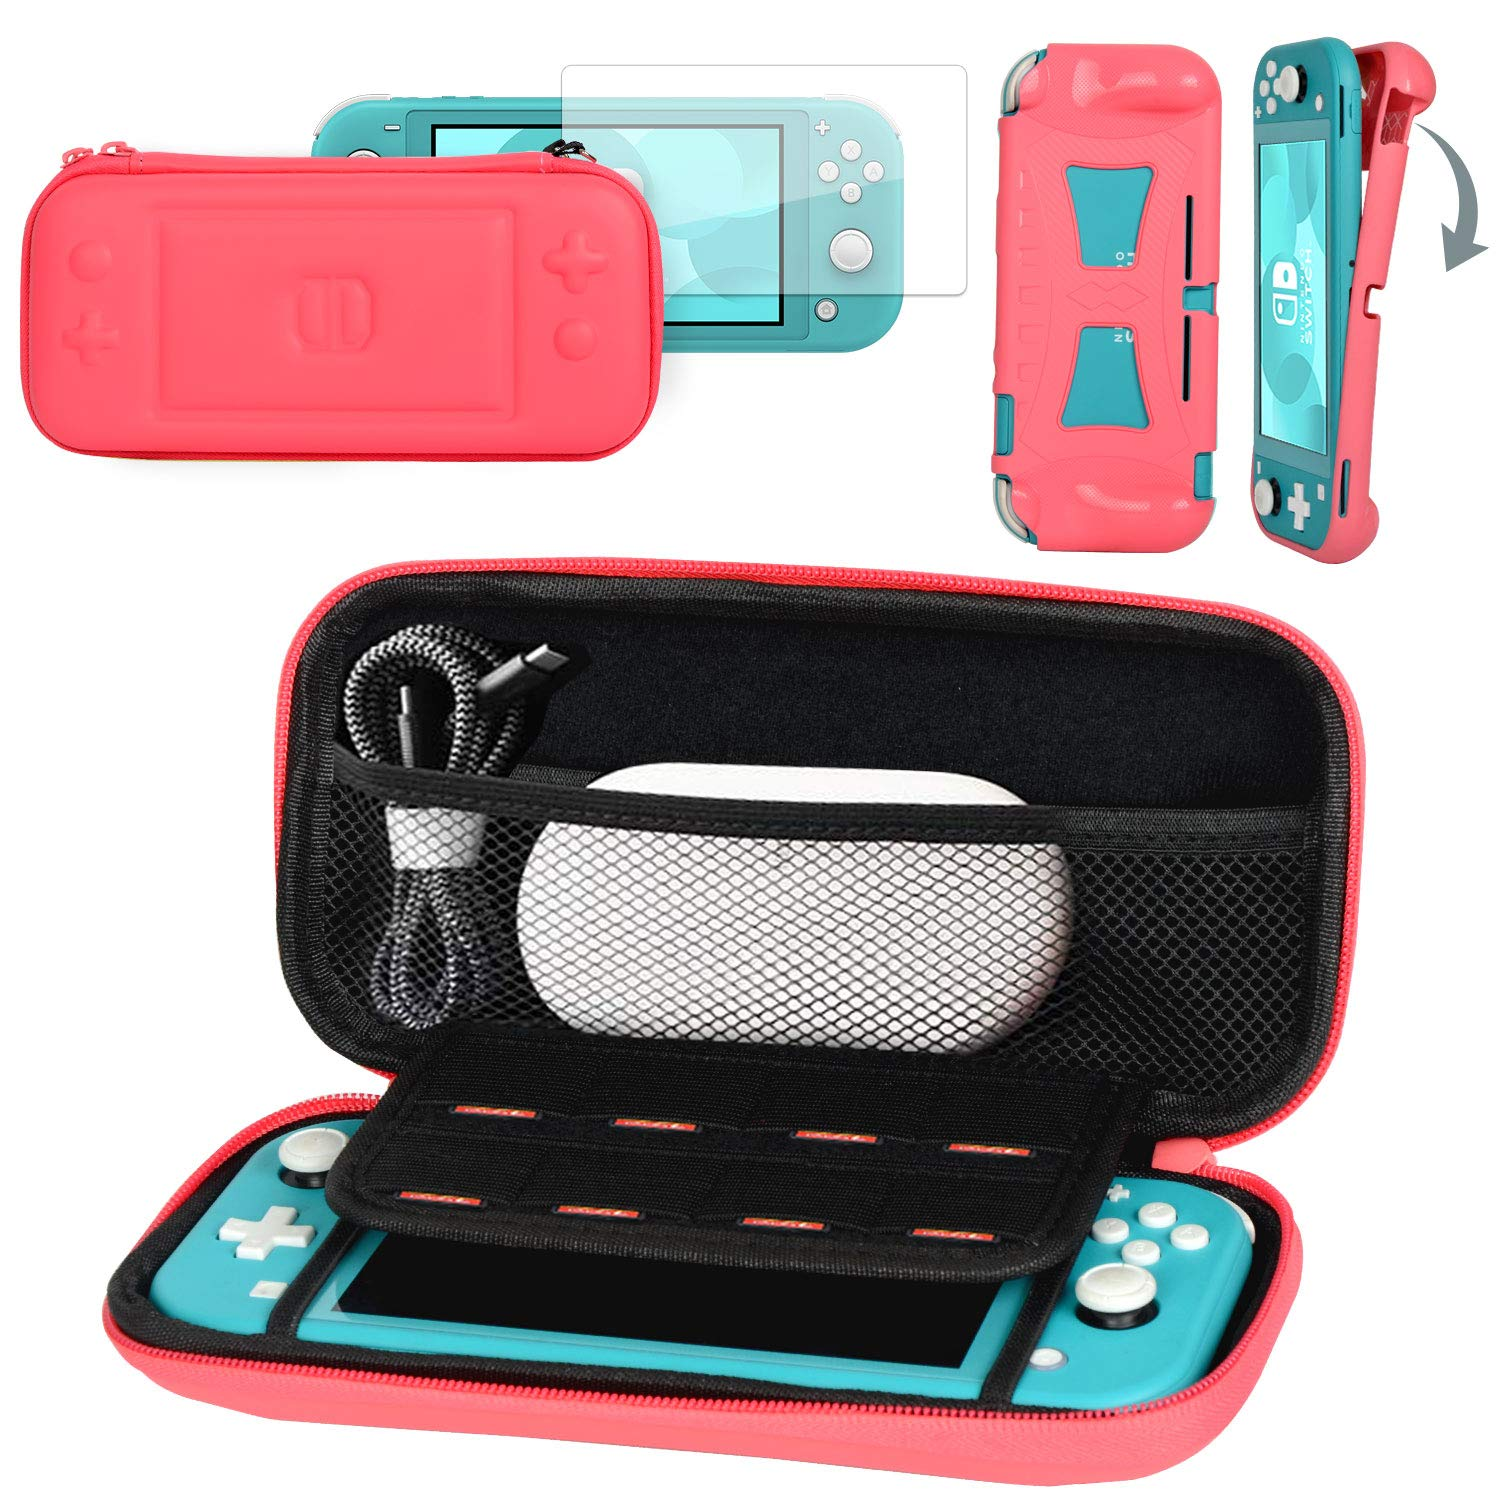 CoBak Carrying Case for Nintendo Switch Lite - with 1 Screen Protector and 1 Grip Case, Ultra Slim Premium EVA Travel Pouch Protective Cover, 8 Game Cartridges, Pink